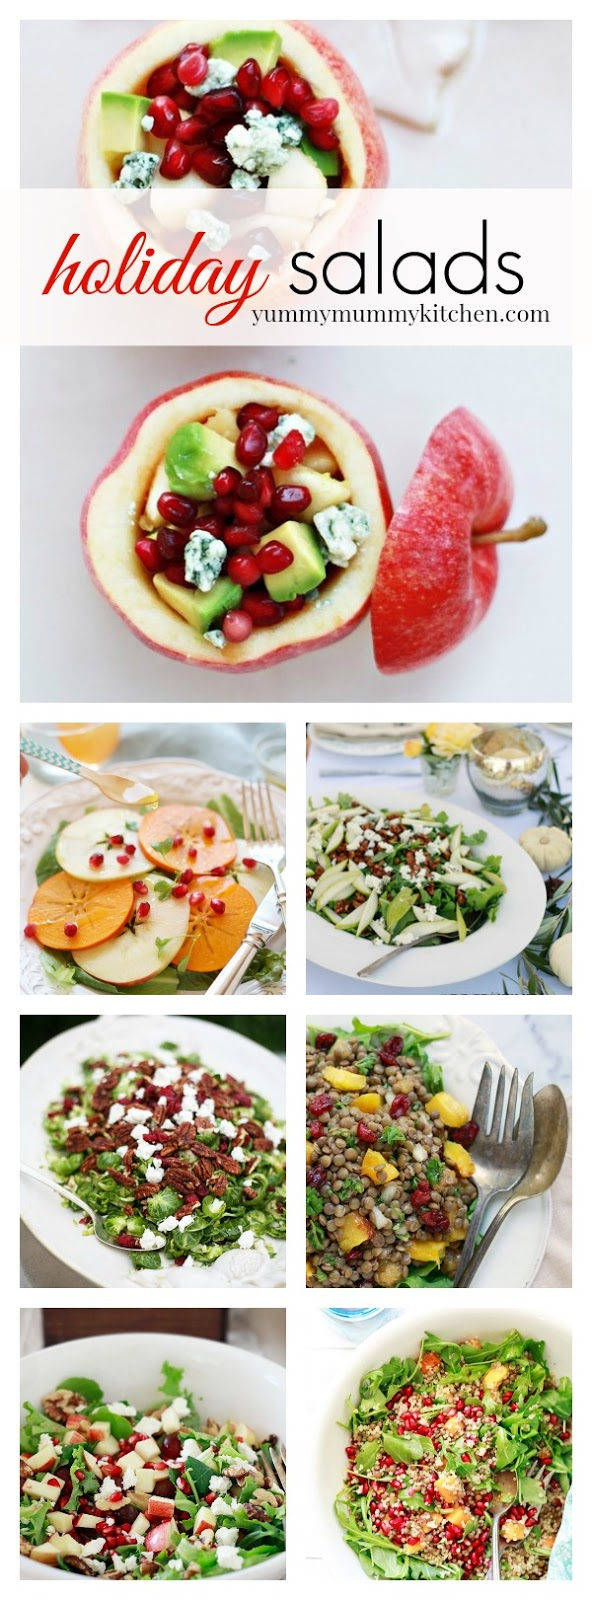 Fall and winter salad recipes perfect for Thanksgiving and Christmas